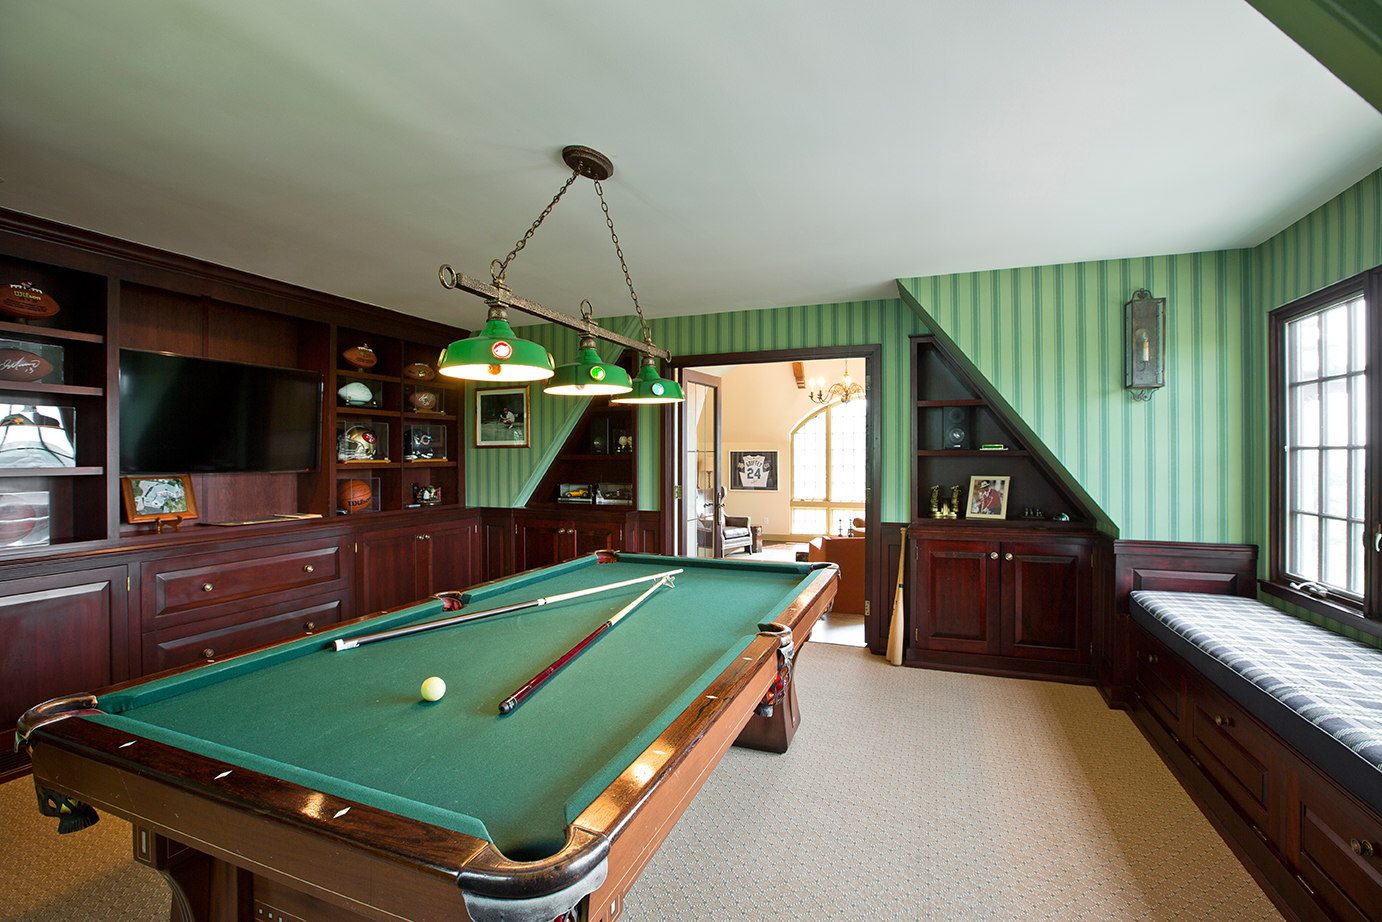 In this client's billiards room - we measure cue-age before finalizing renovation plans. The devil's in the details